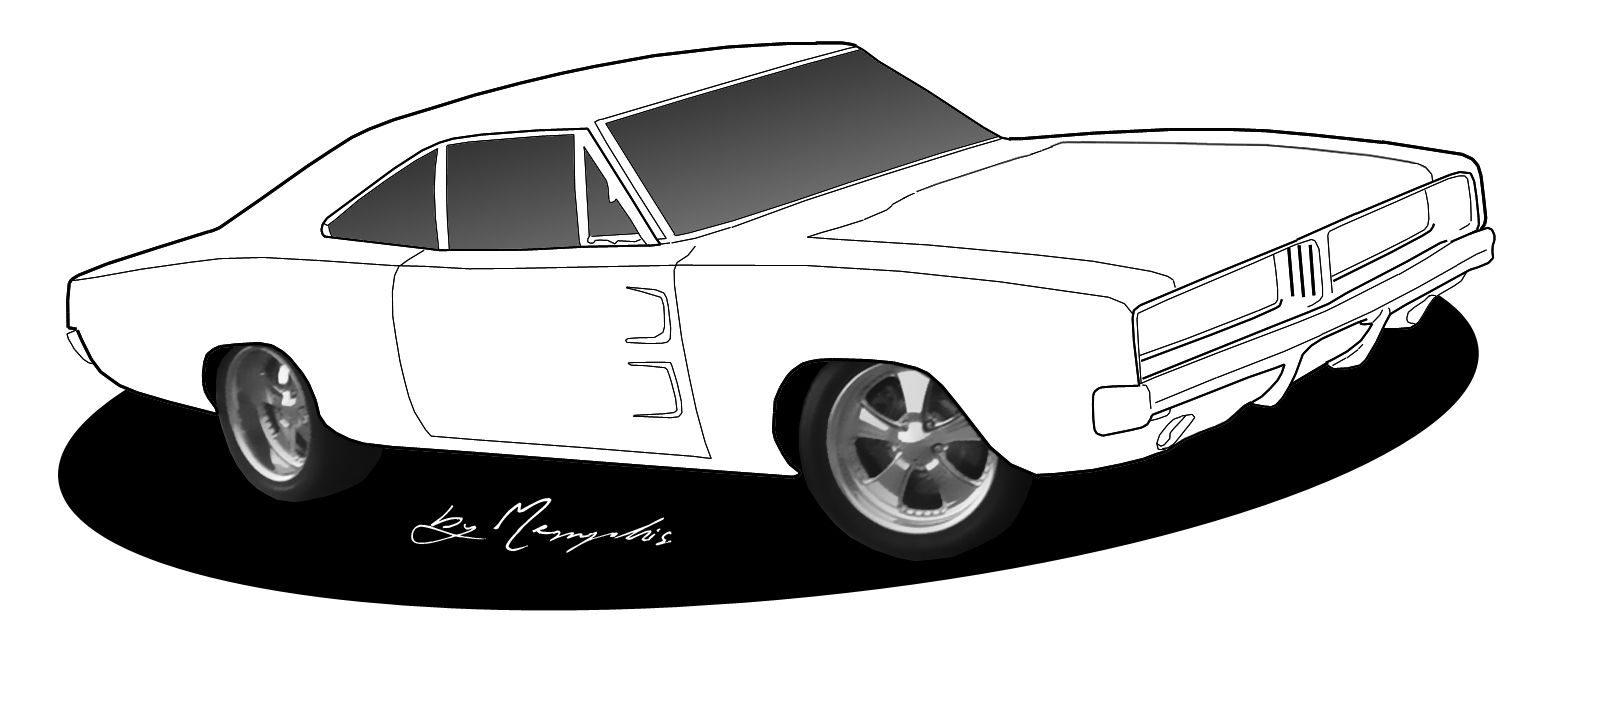 1600x706 Muscle Car Coloring Pages To Download And Print For Free Muscle